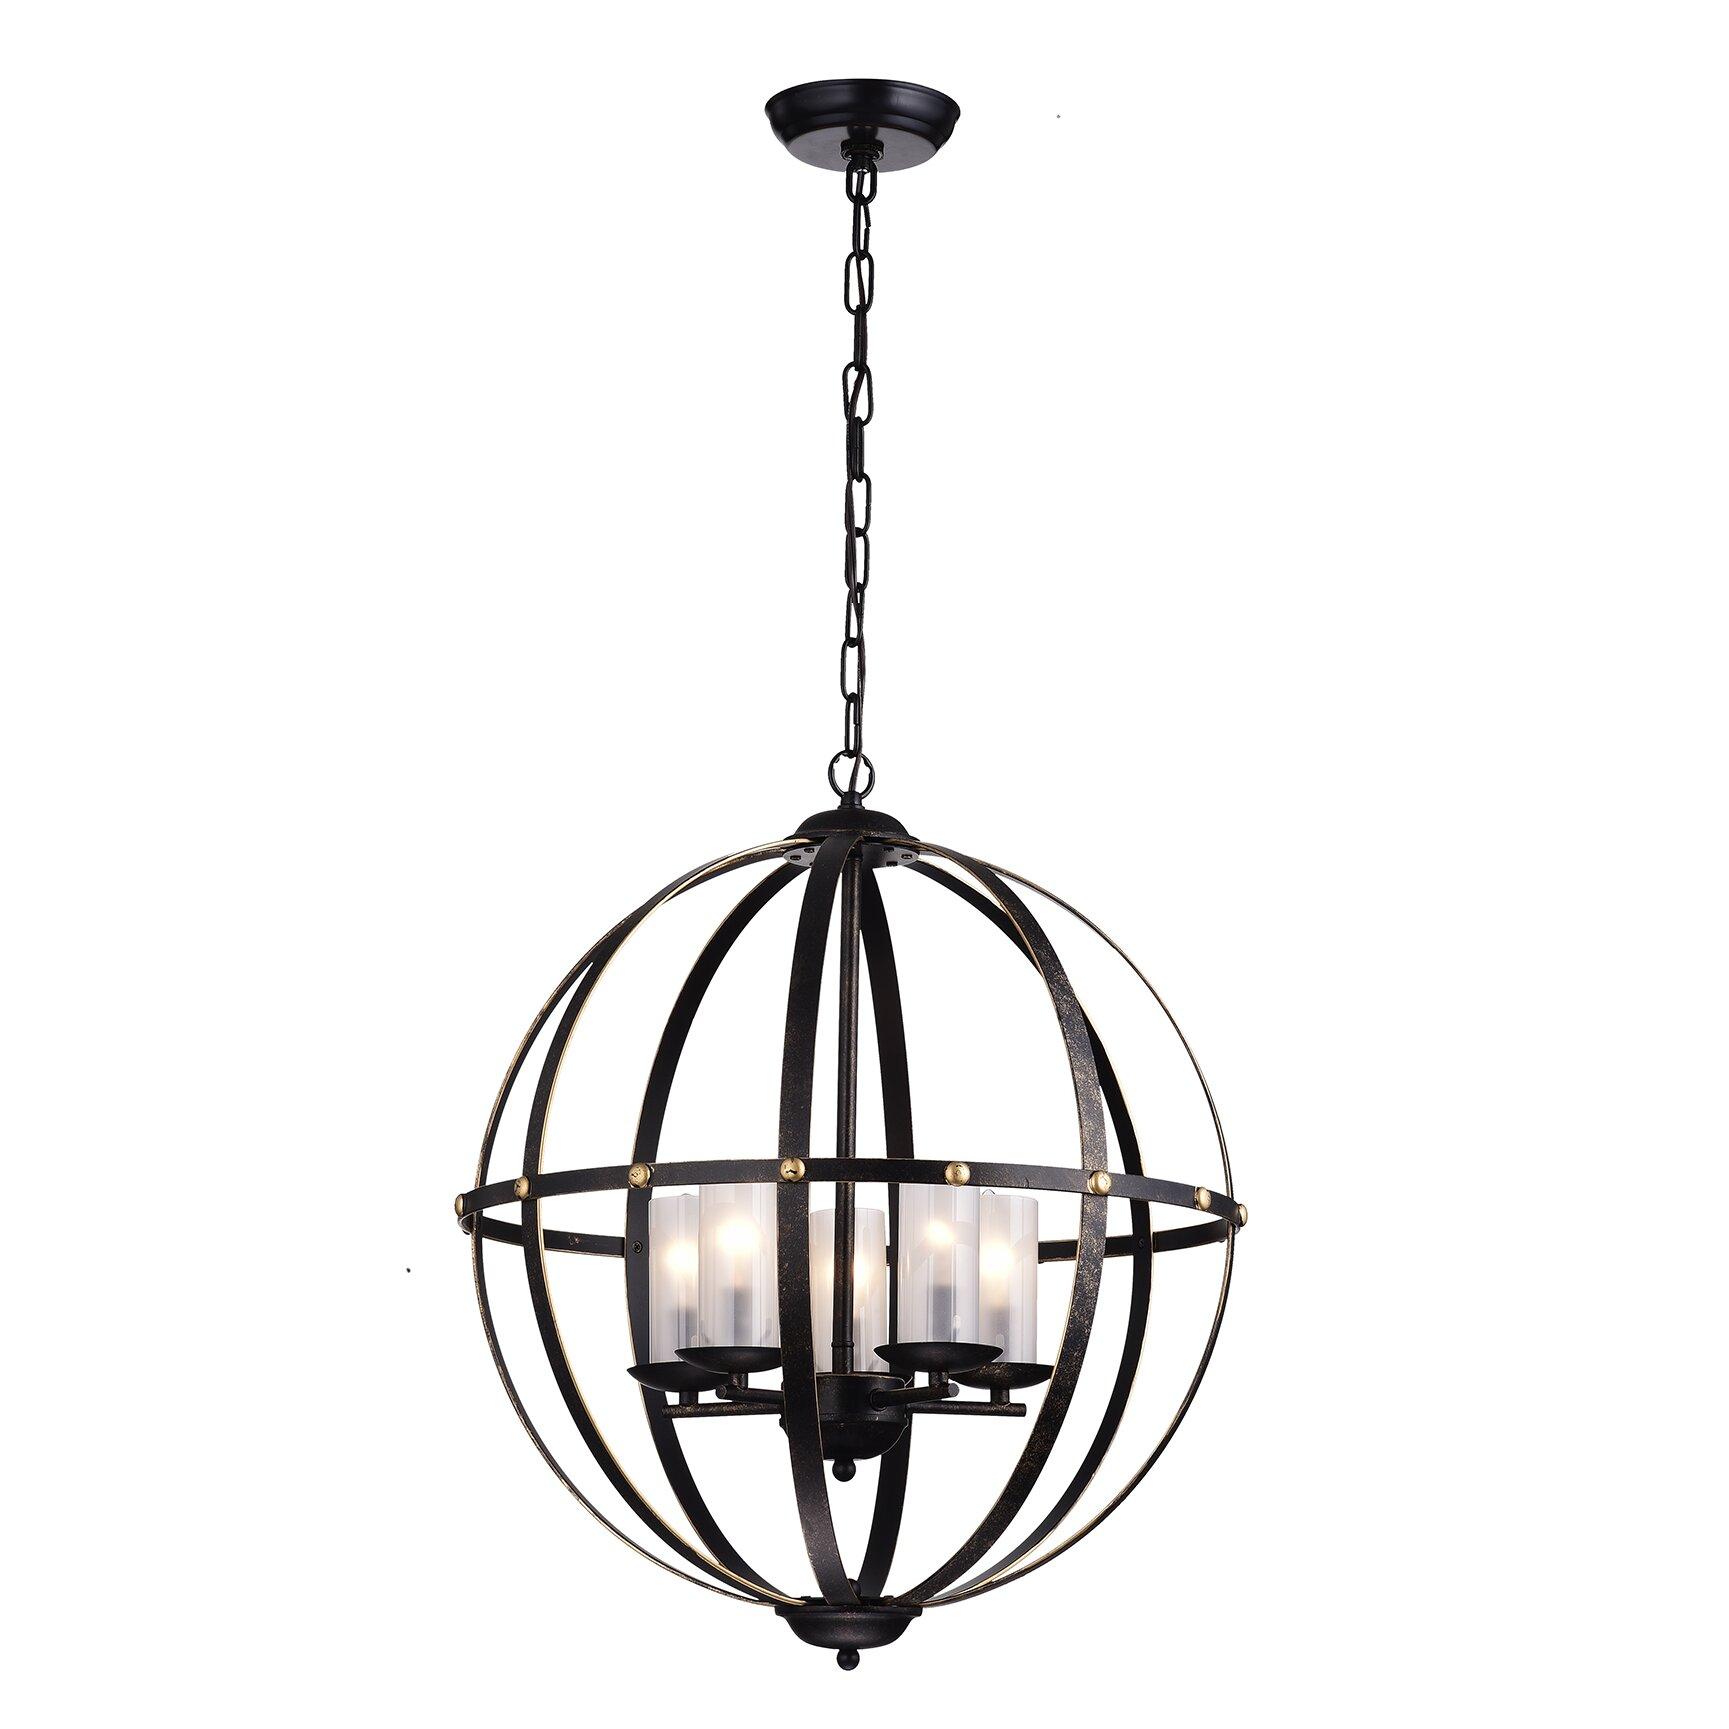 113082640616014821 likewise 4 Ft Light Fixture furthermore 3 Light Pendant Fixture Black as well Cable Safety Light Fixture besides 120v Pendant Lights. on wiring pendant lights diagram 1